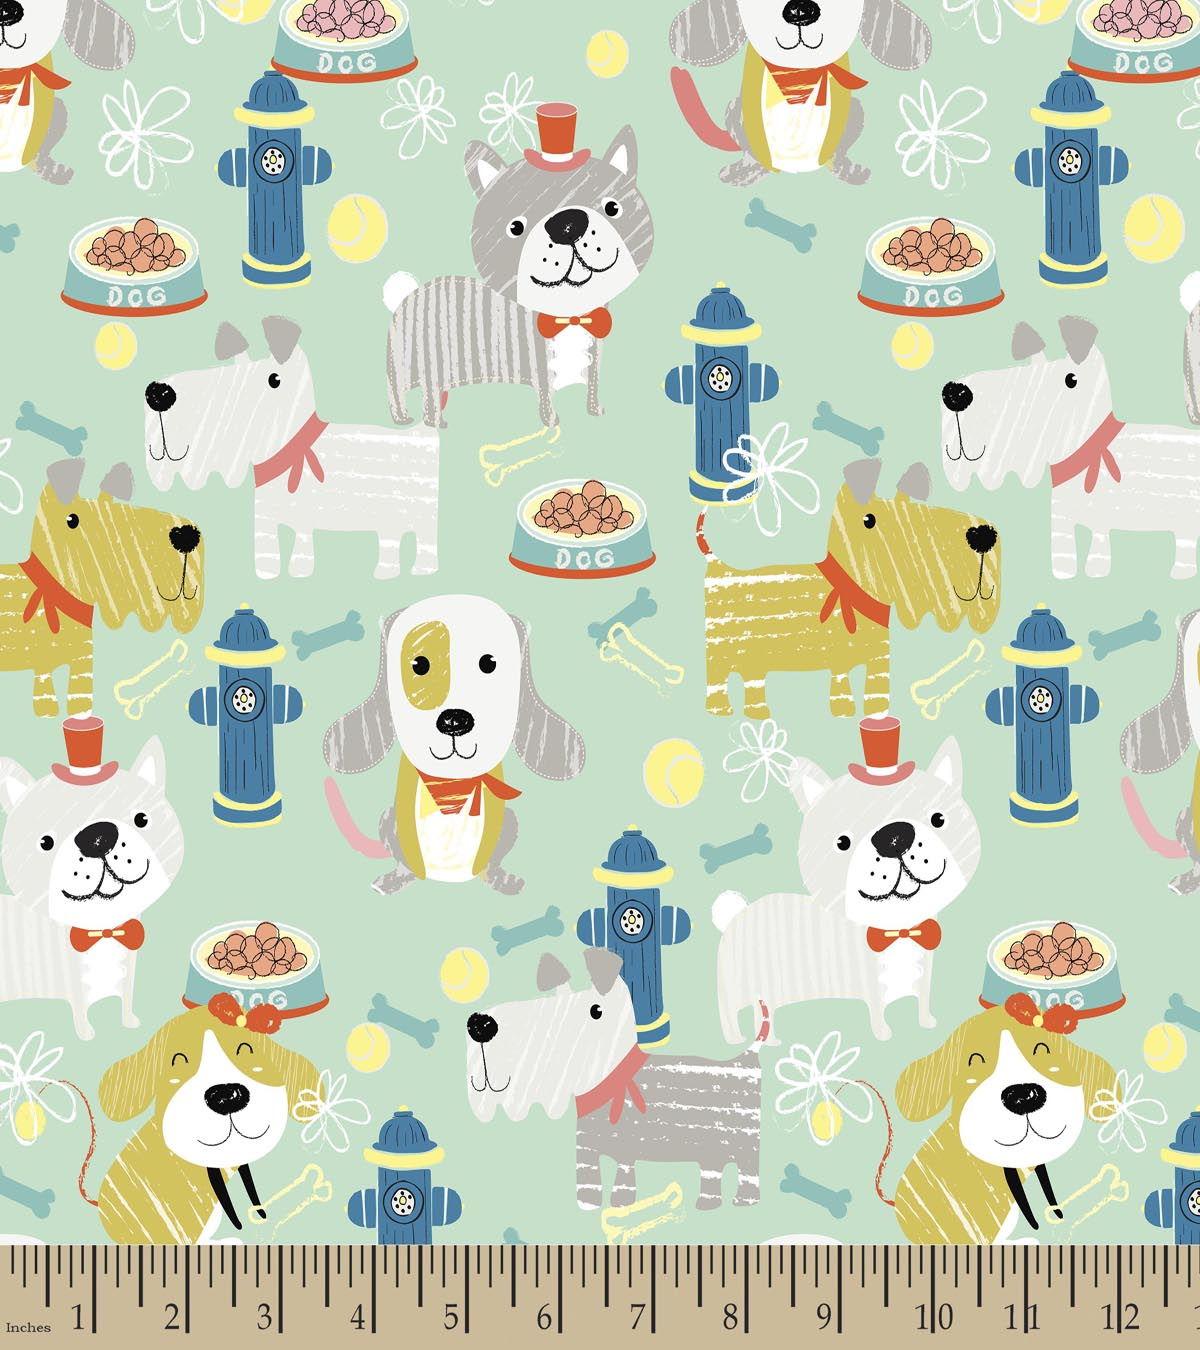 Doggie Fire Hydrant Print Fabric